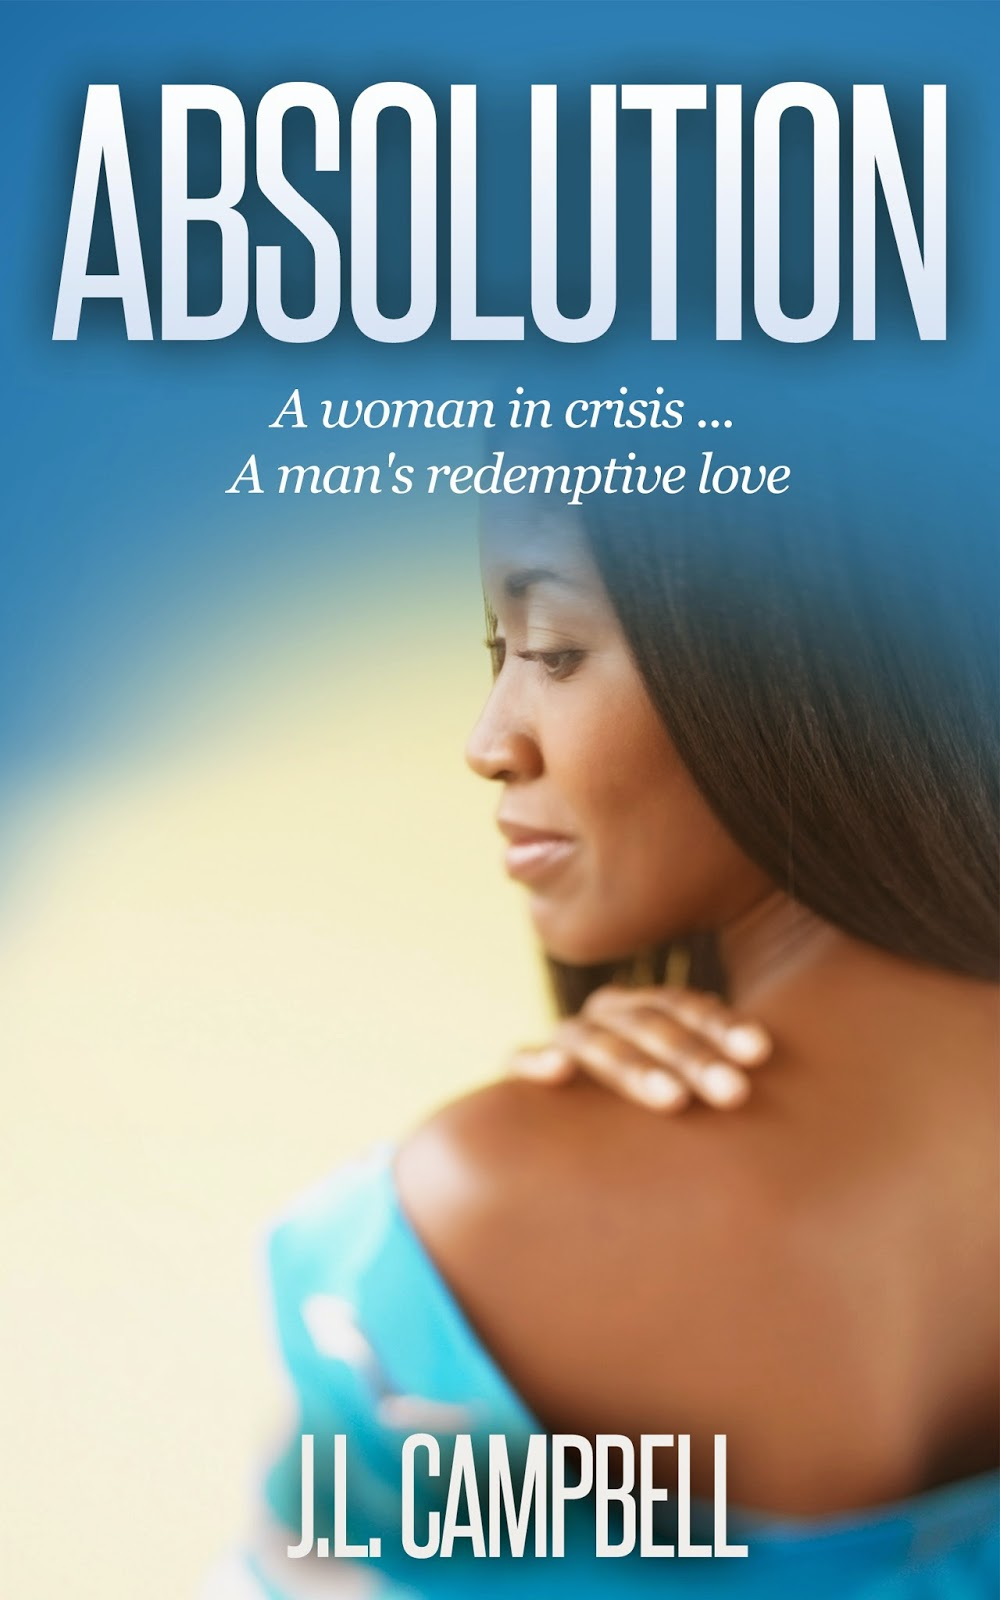 http://www.amazon.com/Absolution-J-L-Campbell-ebook/dp/B00OAXW0GU/ref=sr_1_1?s=digital-text&ie=UTF8&qid=1413647496&sr=1-1&keywords=Absolution+by+J.l.+campbell